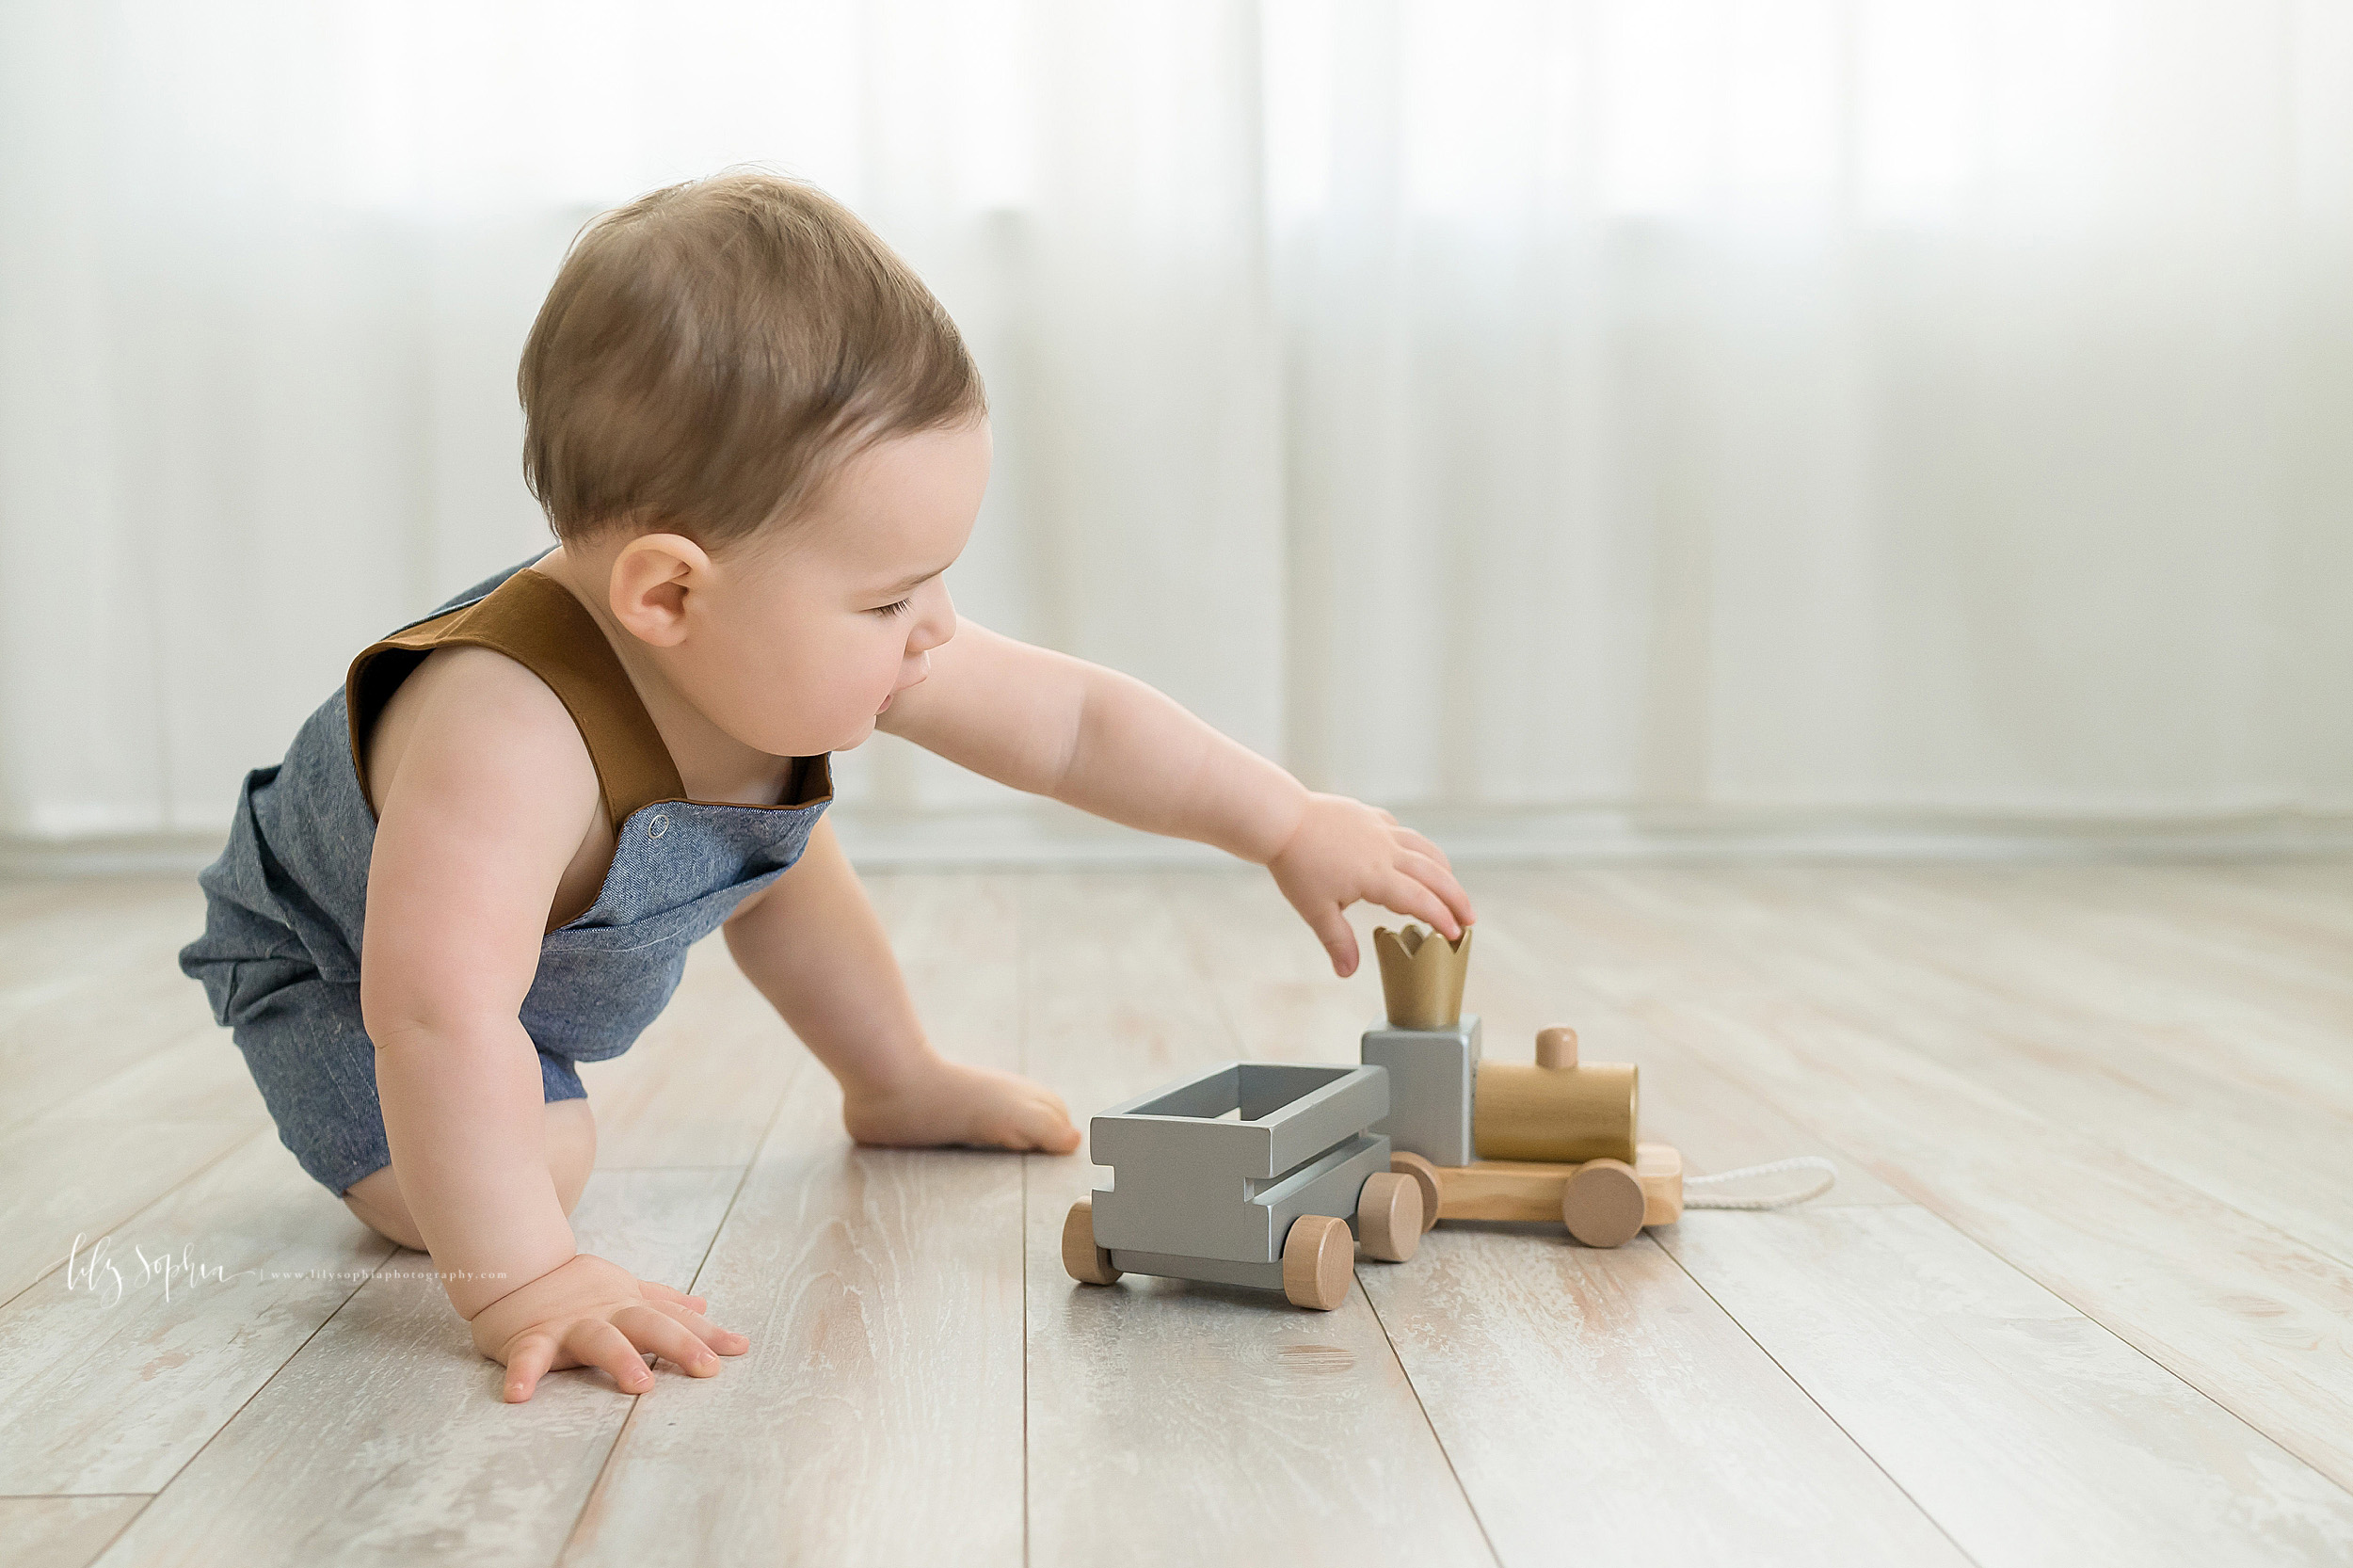 Milestone photo of a one year old little boy as he plays with a wooden train on the floor of a natural light Atlanta studio.